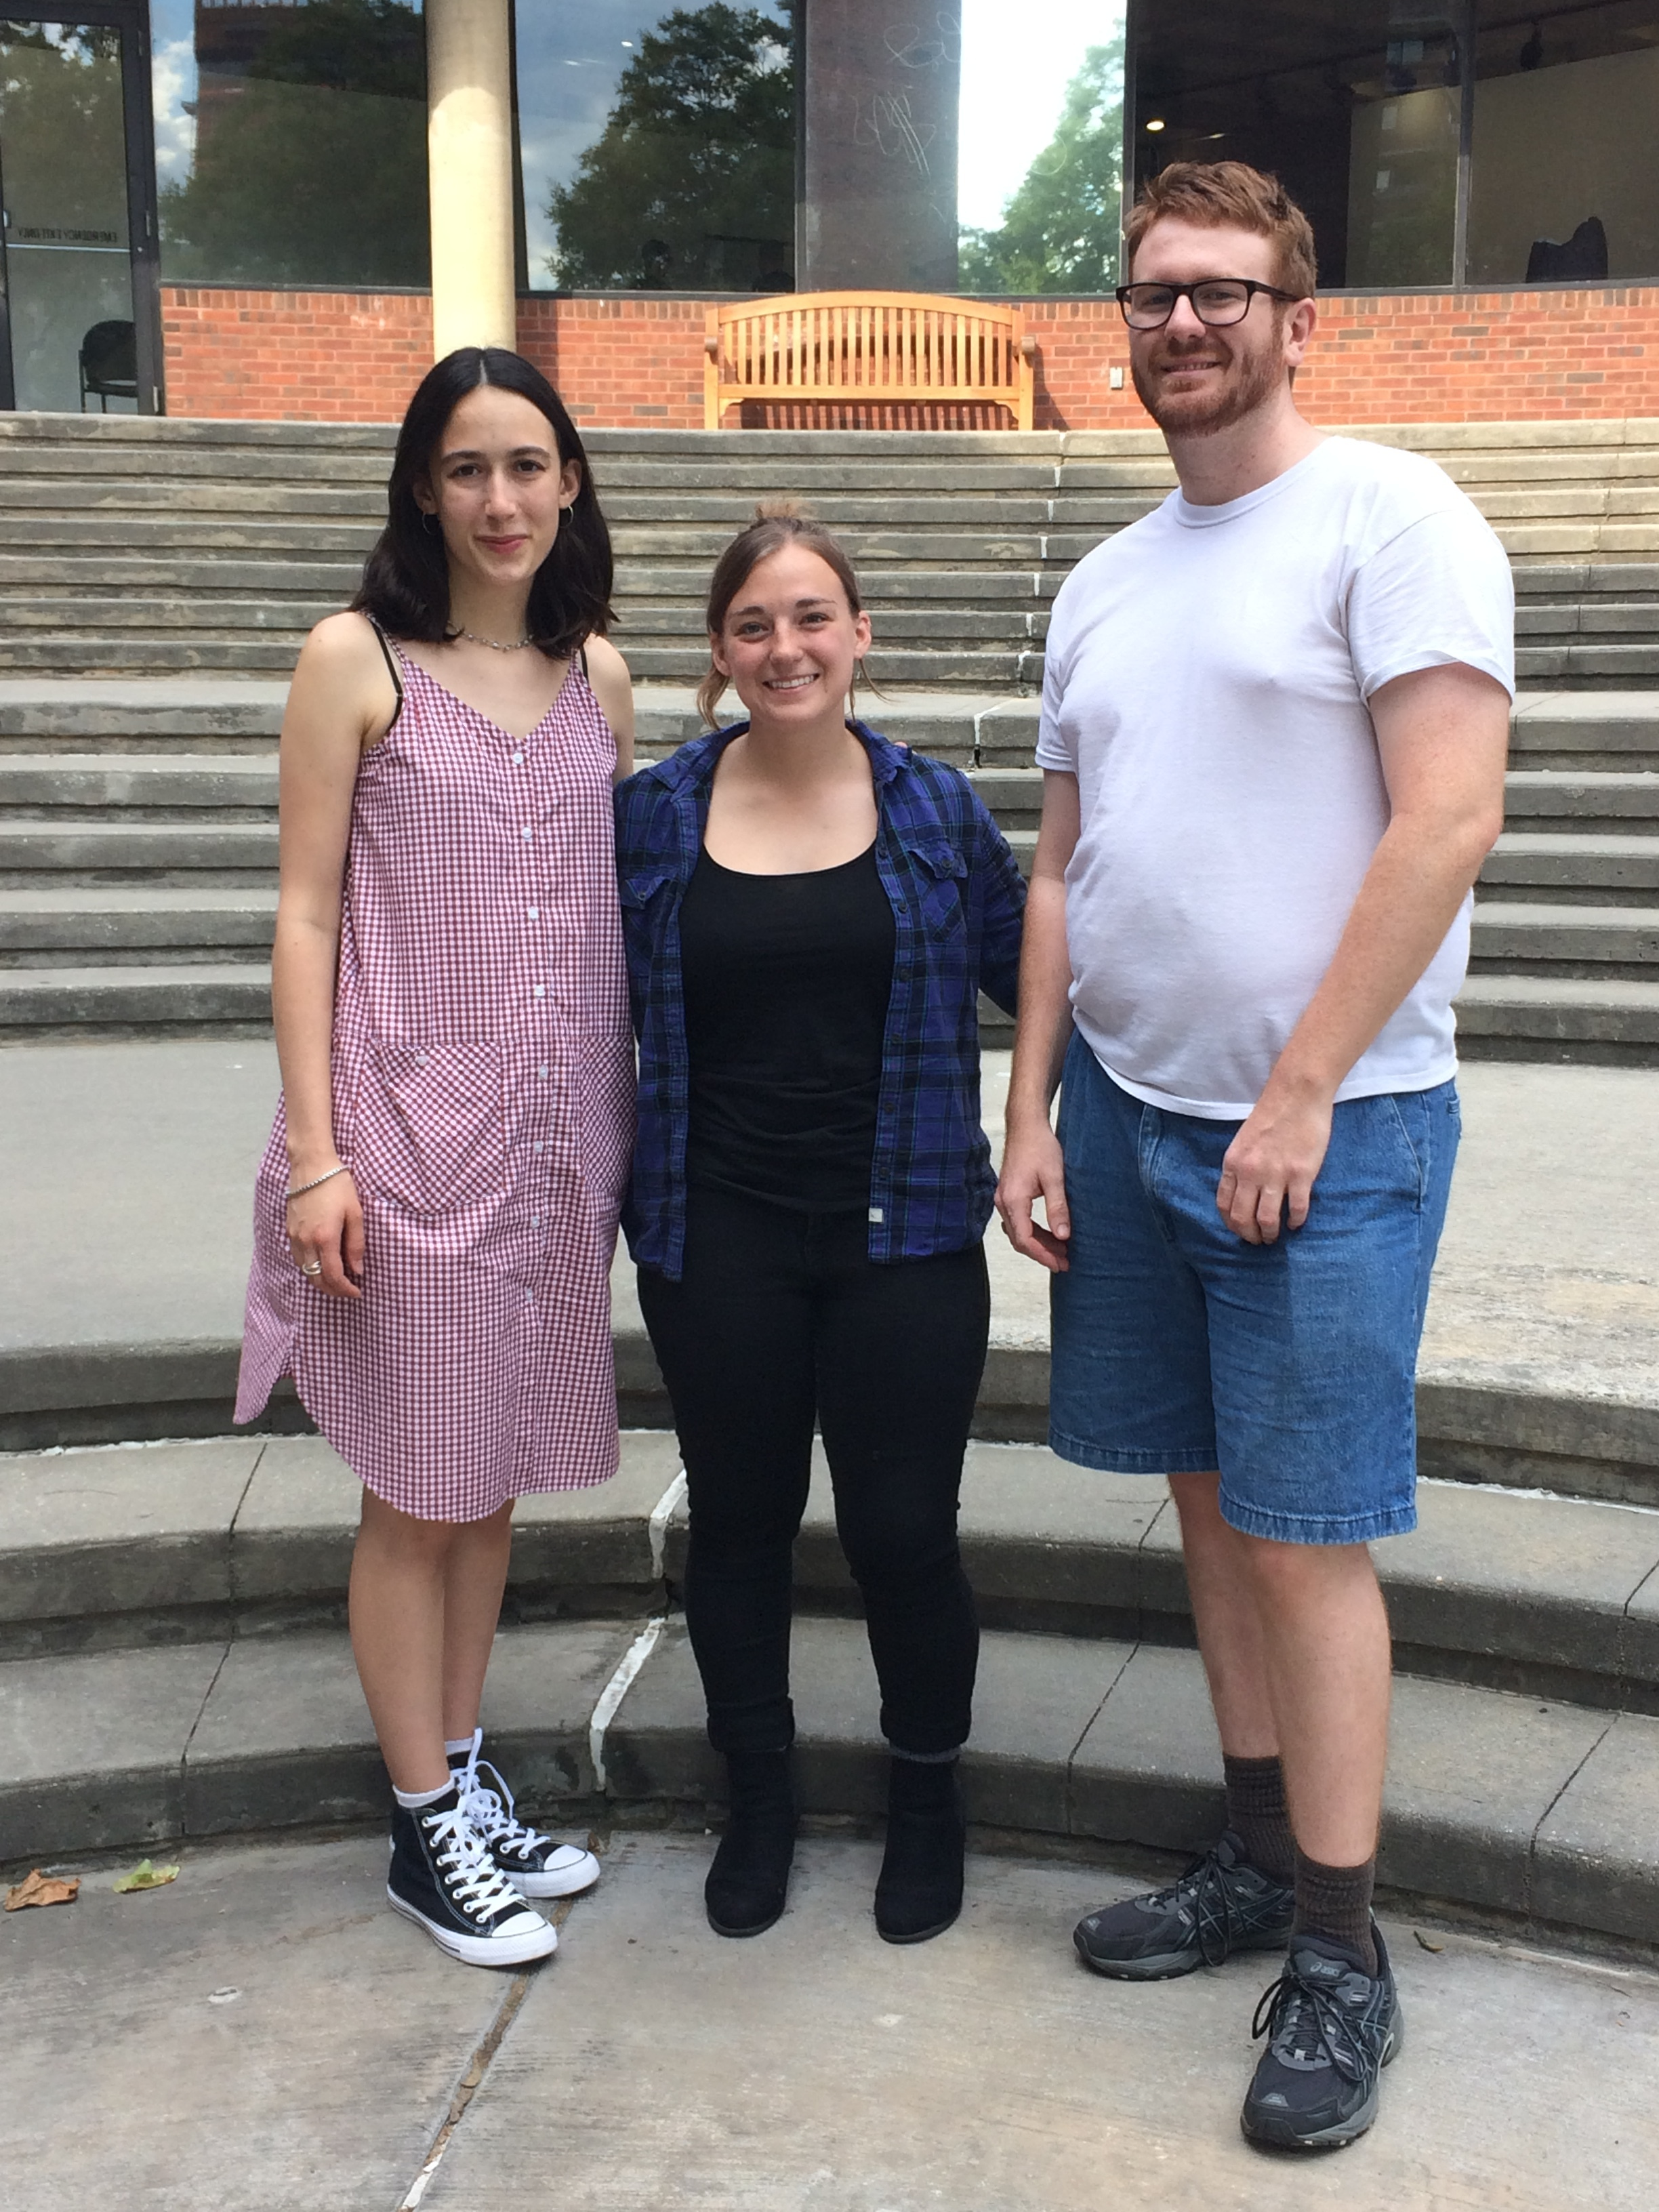 Leah Newman (left), Christiana Rose (center), Hunter Brown (right) at Abrons Art Center in NYC at NYCEMF 2017